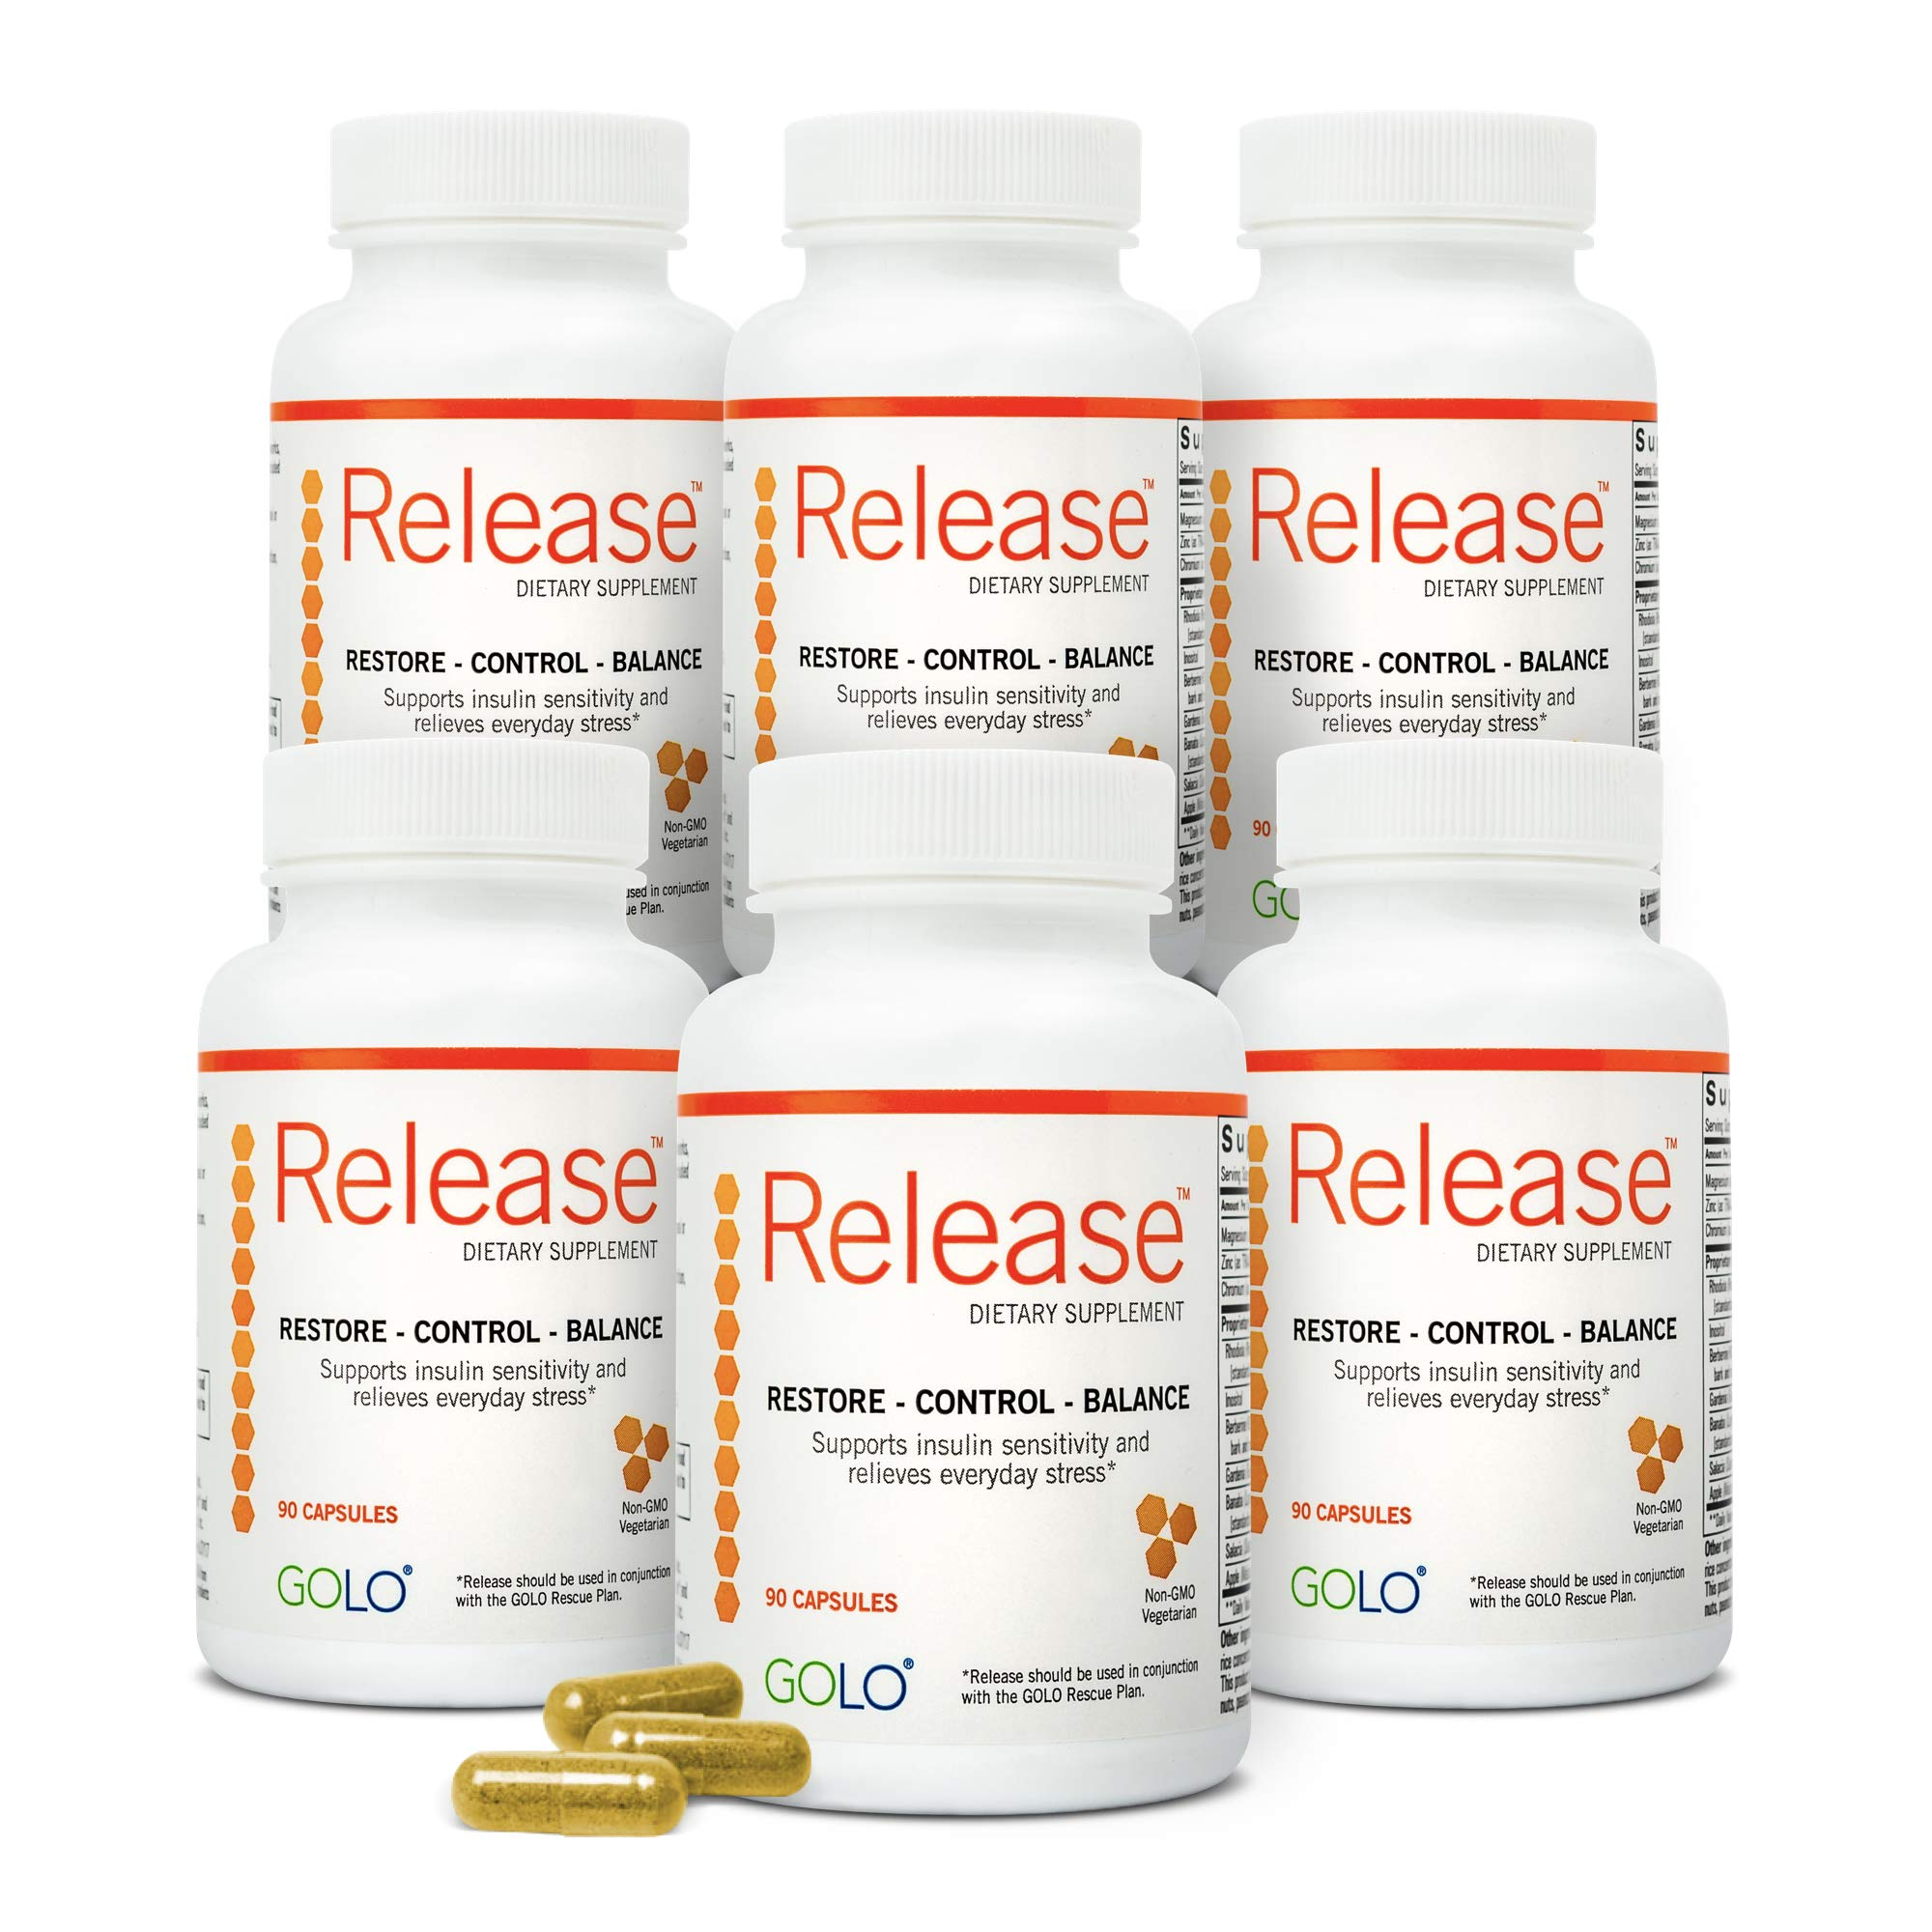 GOLO Release Diet Supplement - Natural Plant-Based Nutraceutical - Balance Hormones, Increase Metabolic Efficiency - No Caffeine, No Stimulants, Vegetarian Safe - 180 Day Supply - 540 Capsules by GOLO